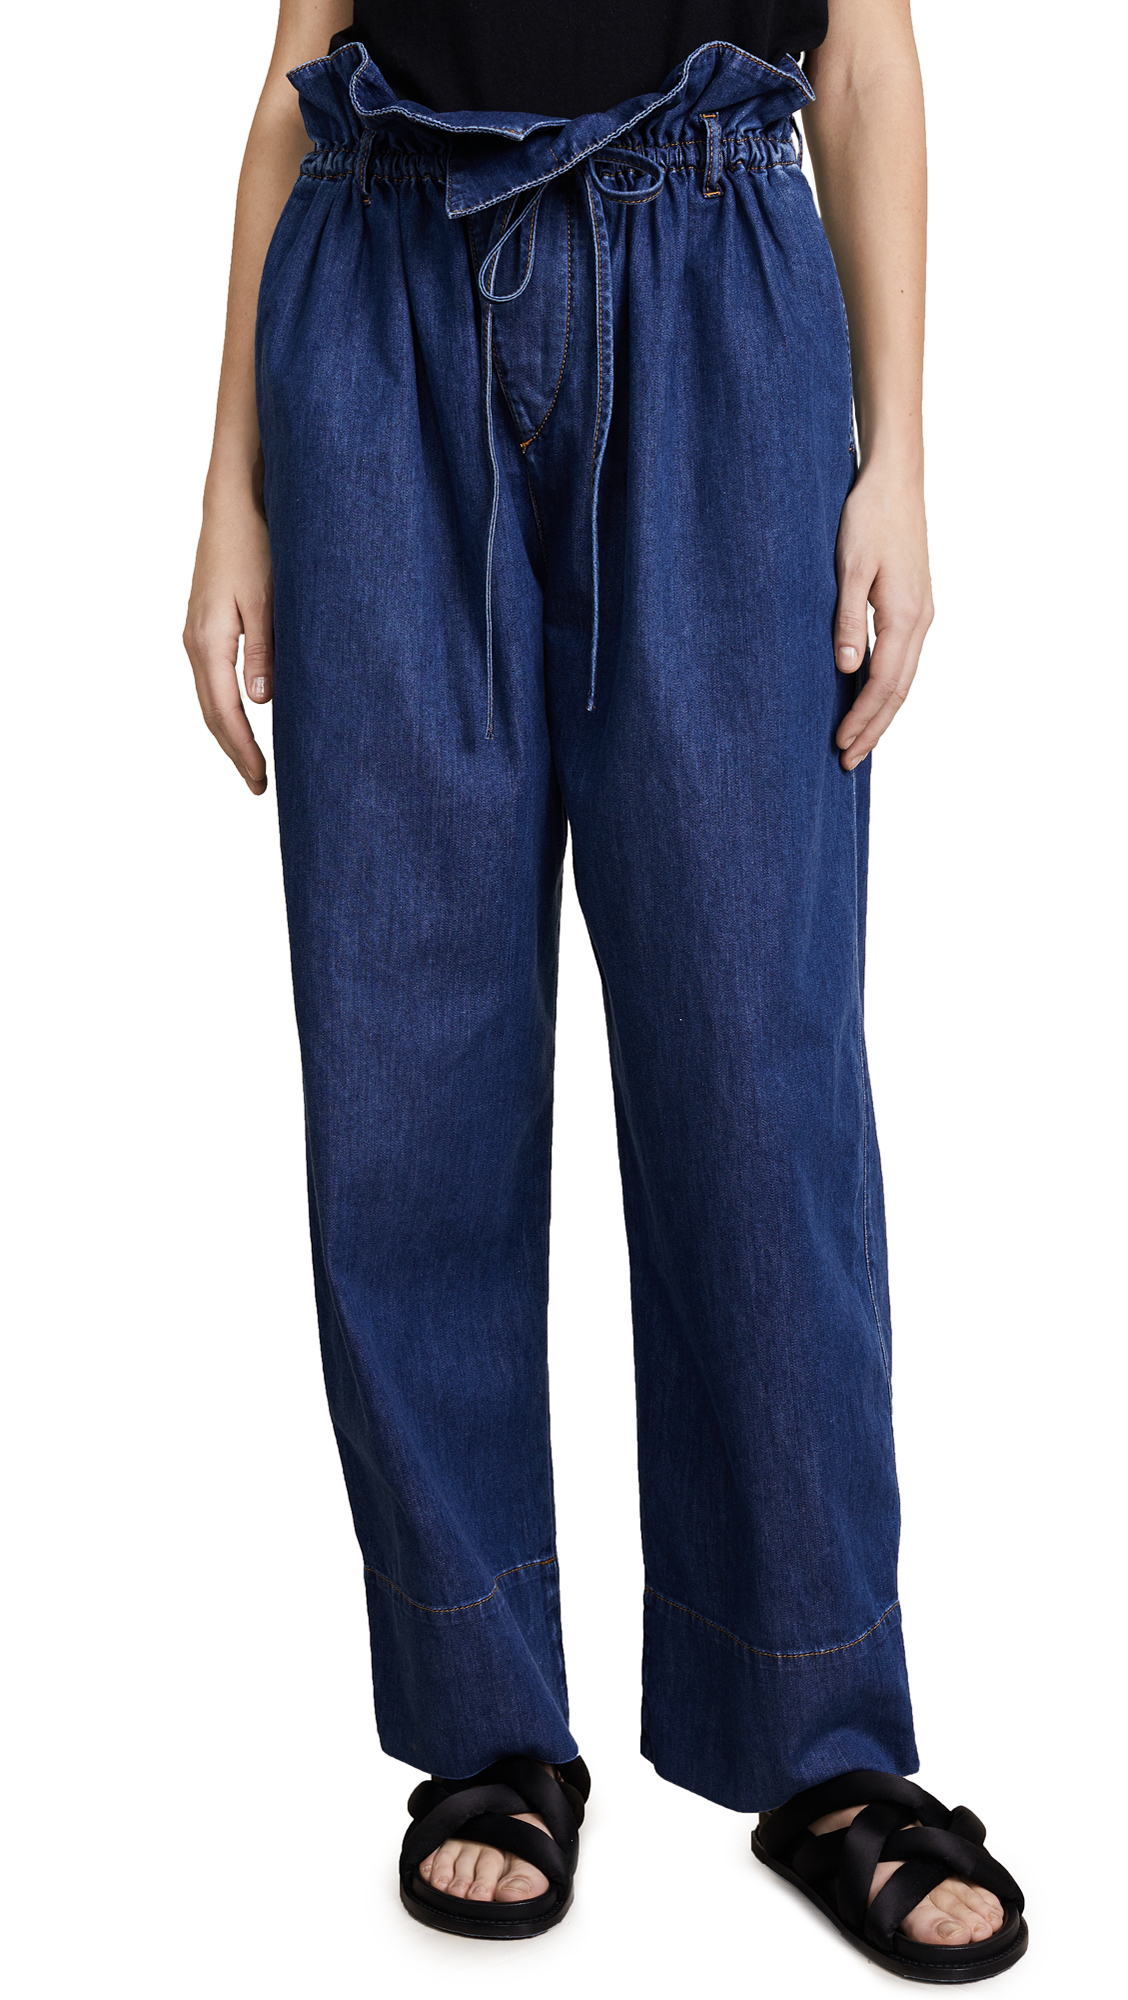 Stella McCartney Olive Paper Bag Waist Jeans - Dark Blue